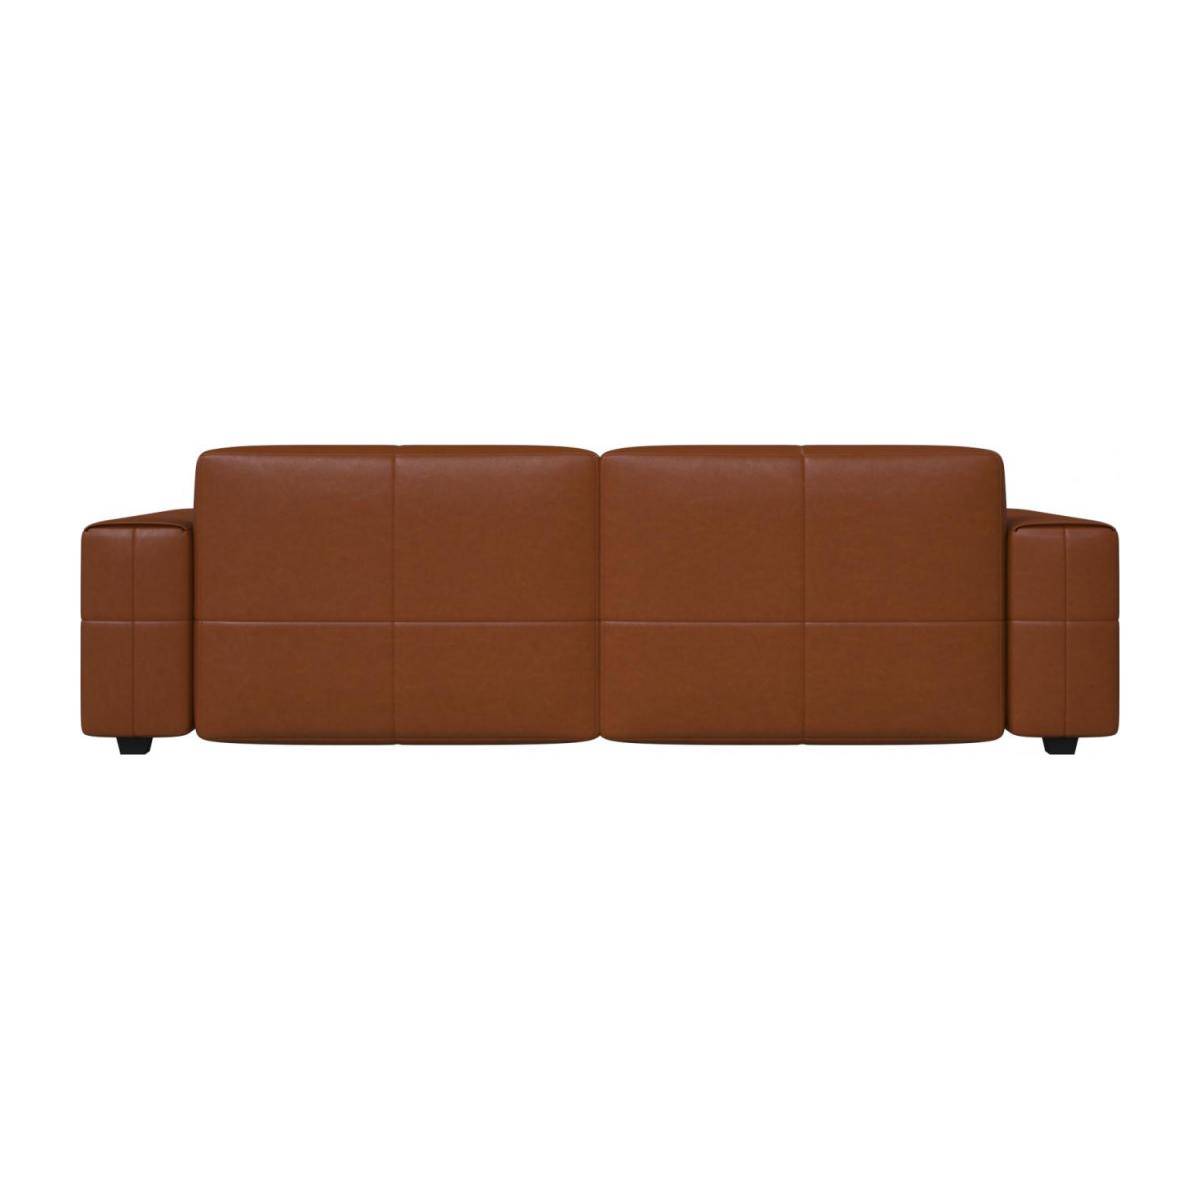 4 seater sofa in Vintage aniline leather, old chestnut n°3